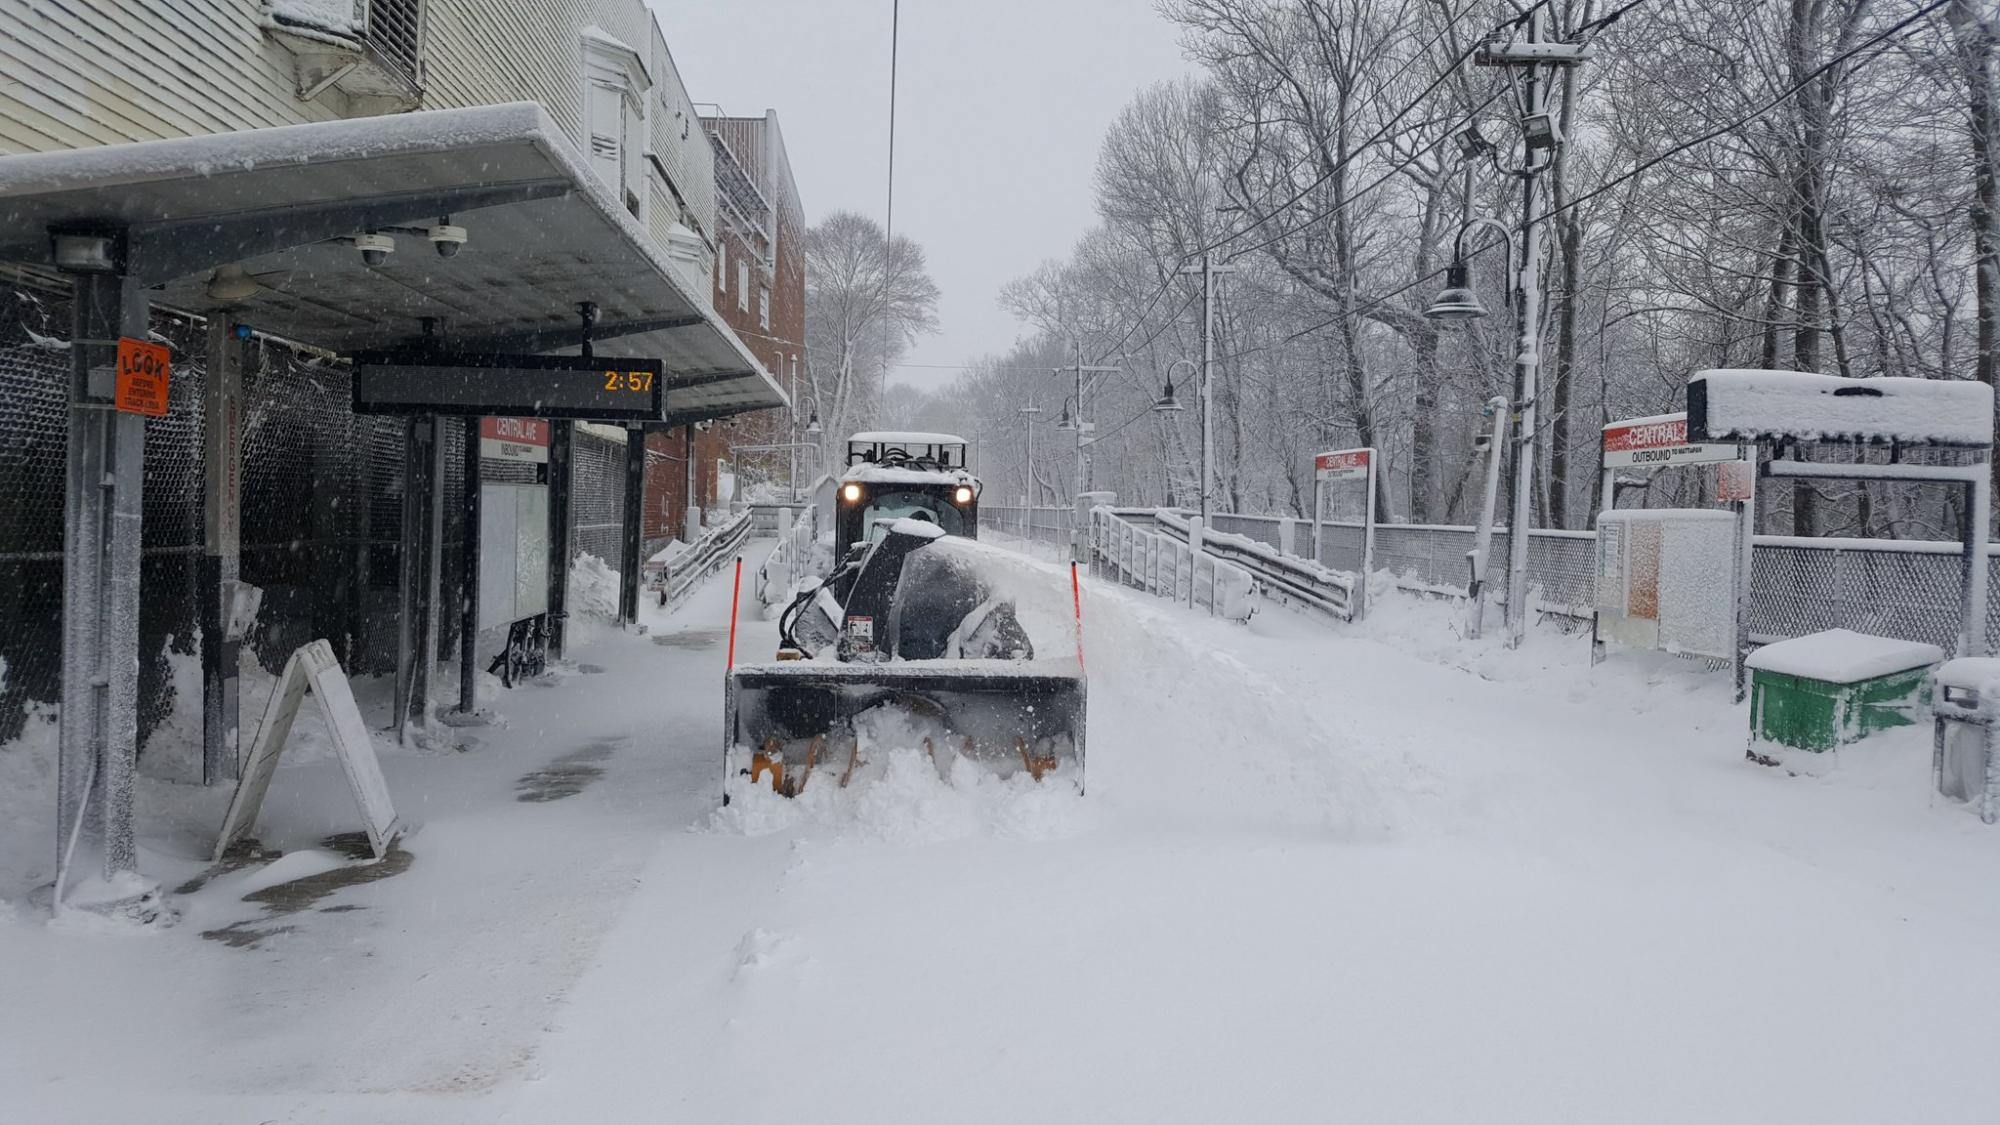 A large snow plow goes down the Mattapan Trolley's tracks at Central Ave station, clearing snow.